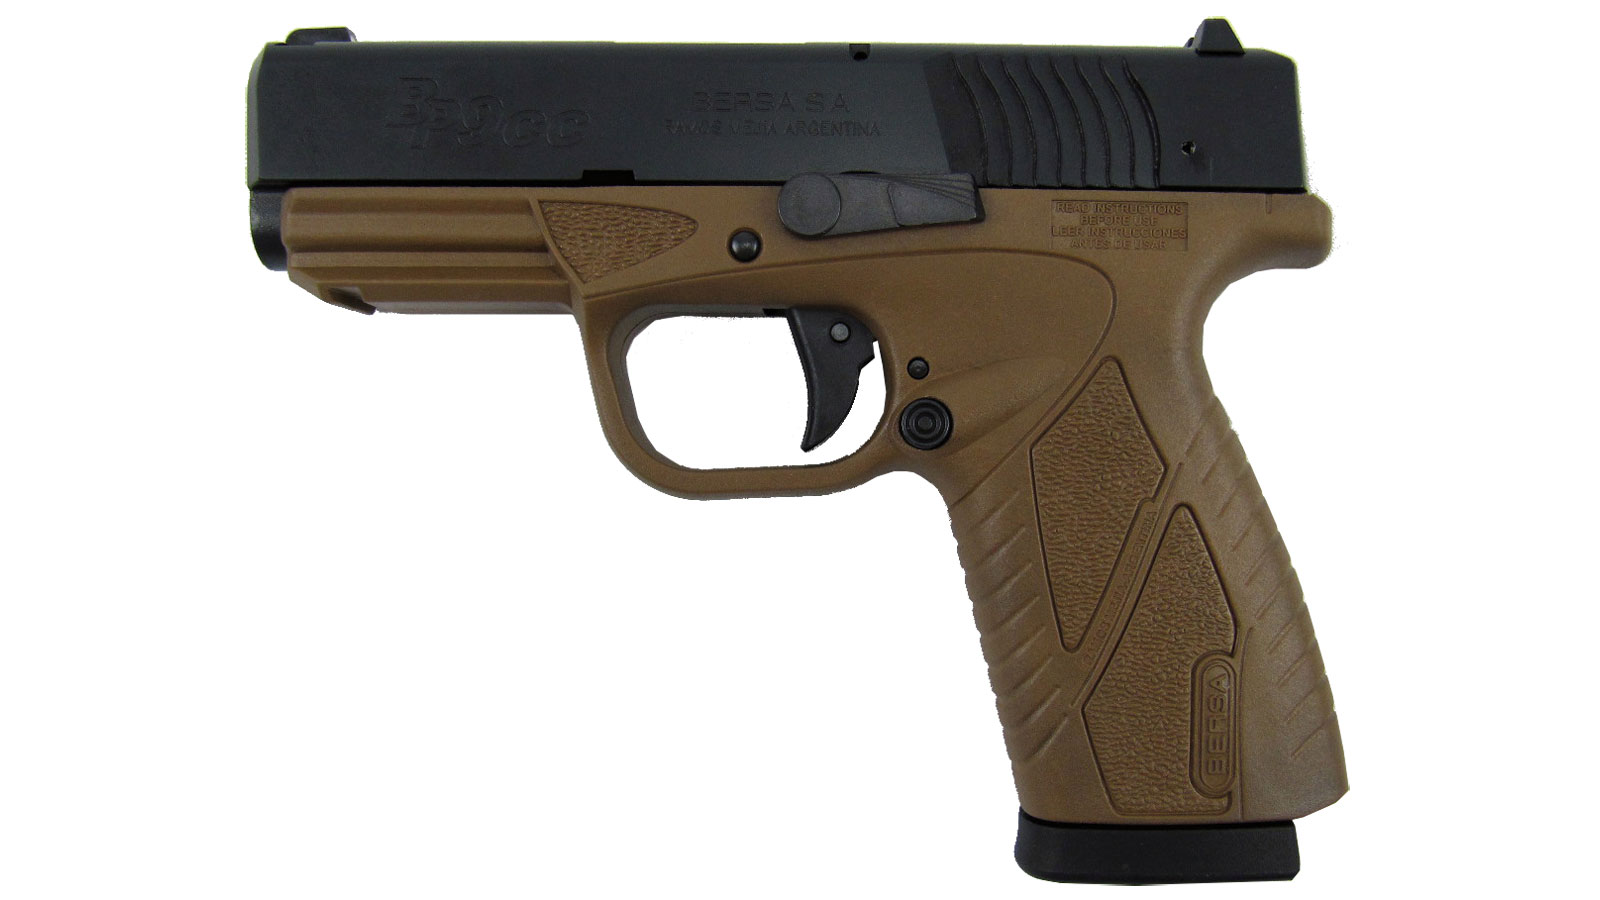 Bersa BP9DECC BPCC Concealed Carry Double 9mm Luger 3.3 8+1 Flat Dark Earth Polymer Grip|Frame Grip Black in.